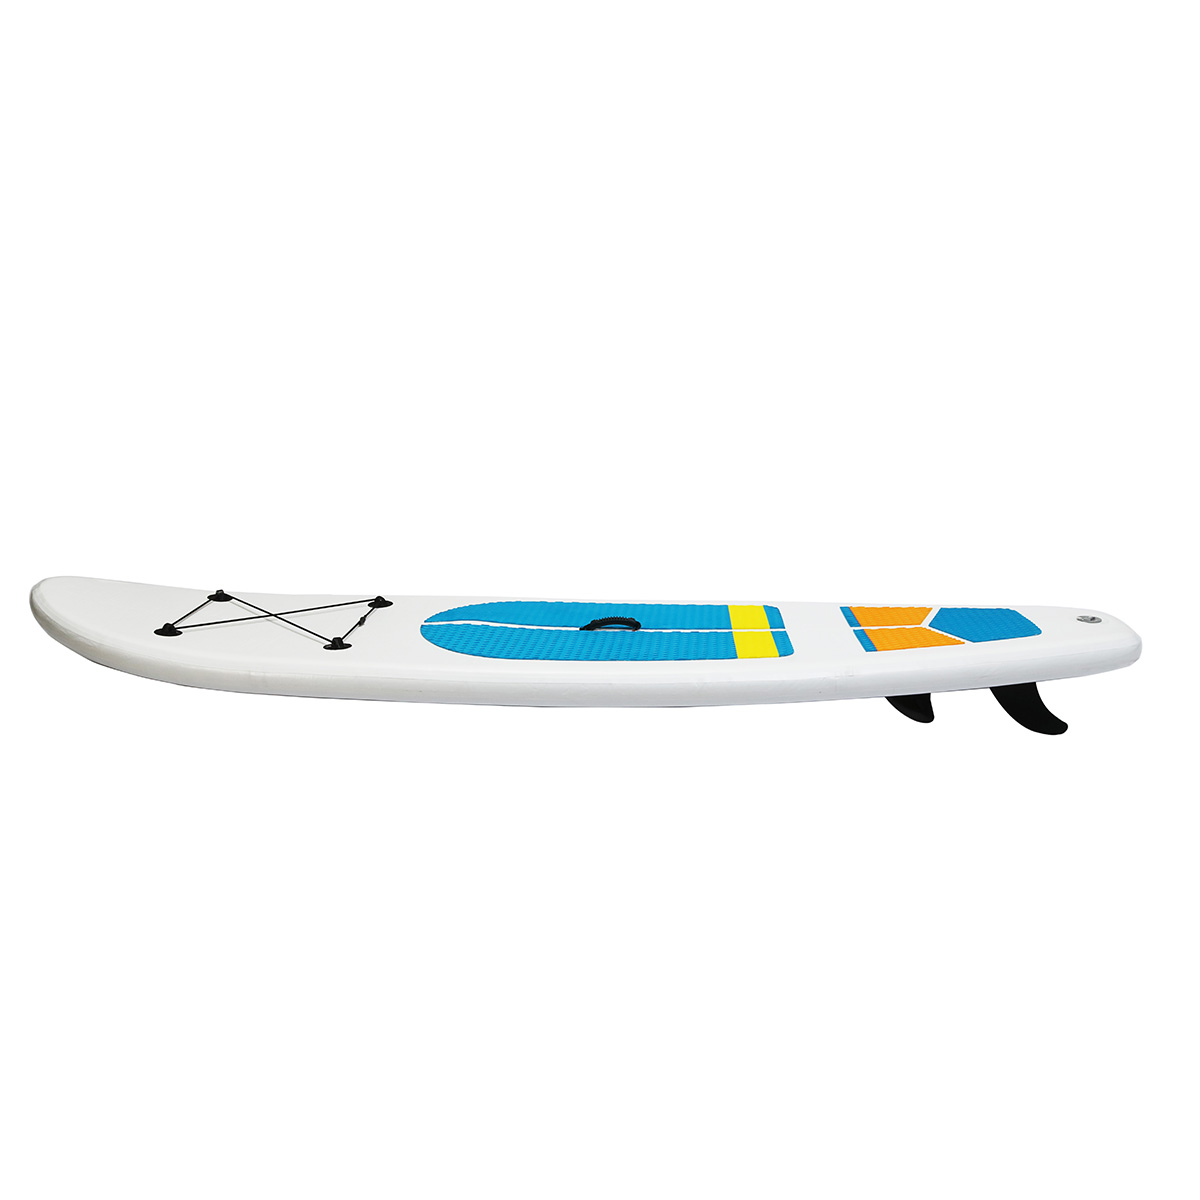 Outdoor 9.5ft Inflatable Surfboard Set Stand Up Saddle Surf Boat Wave Ride Water Sports SUP Board